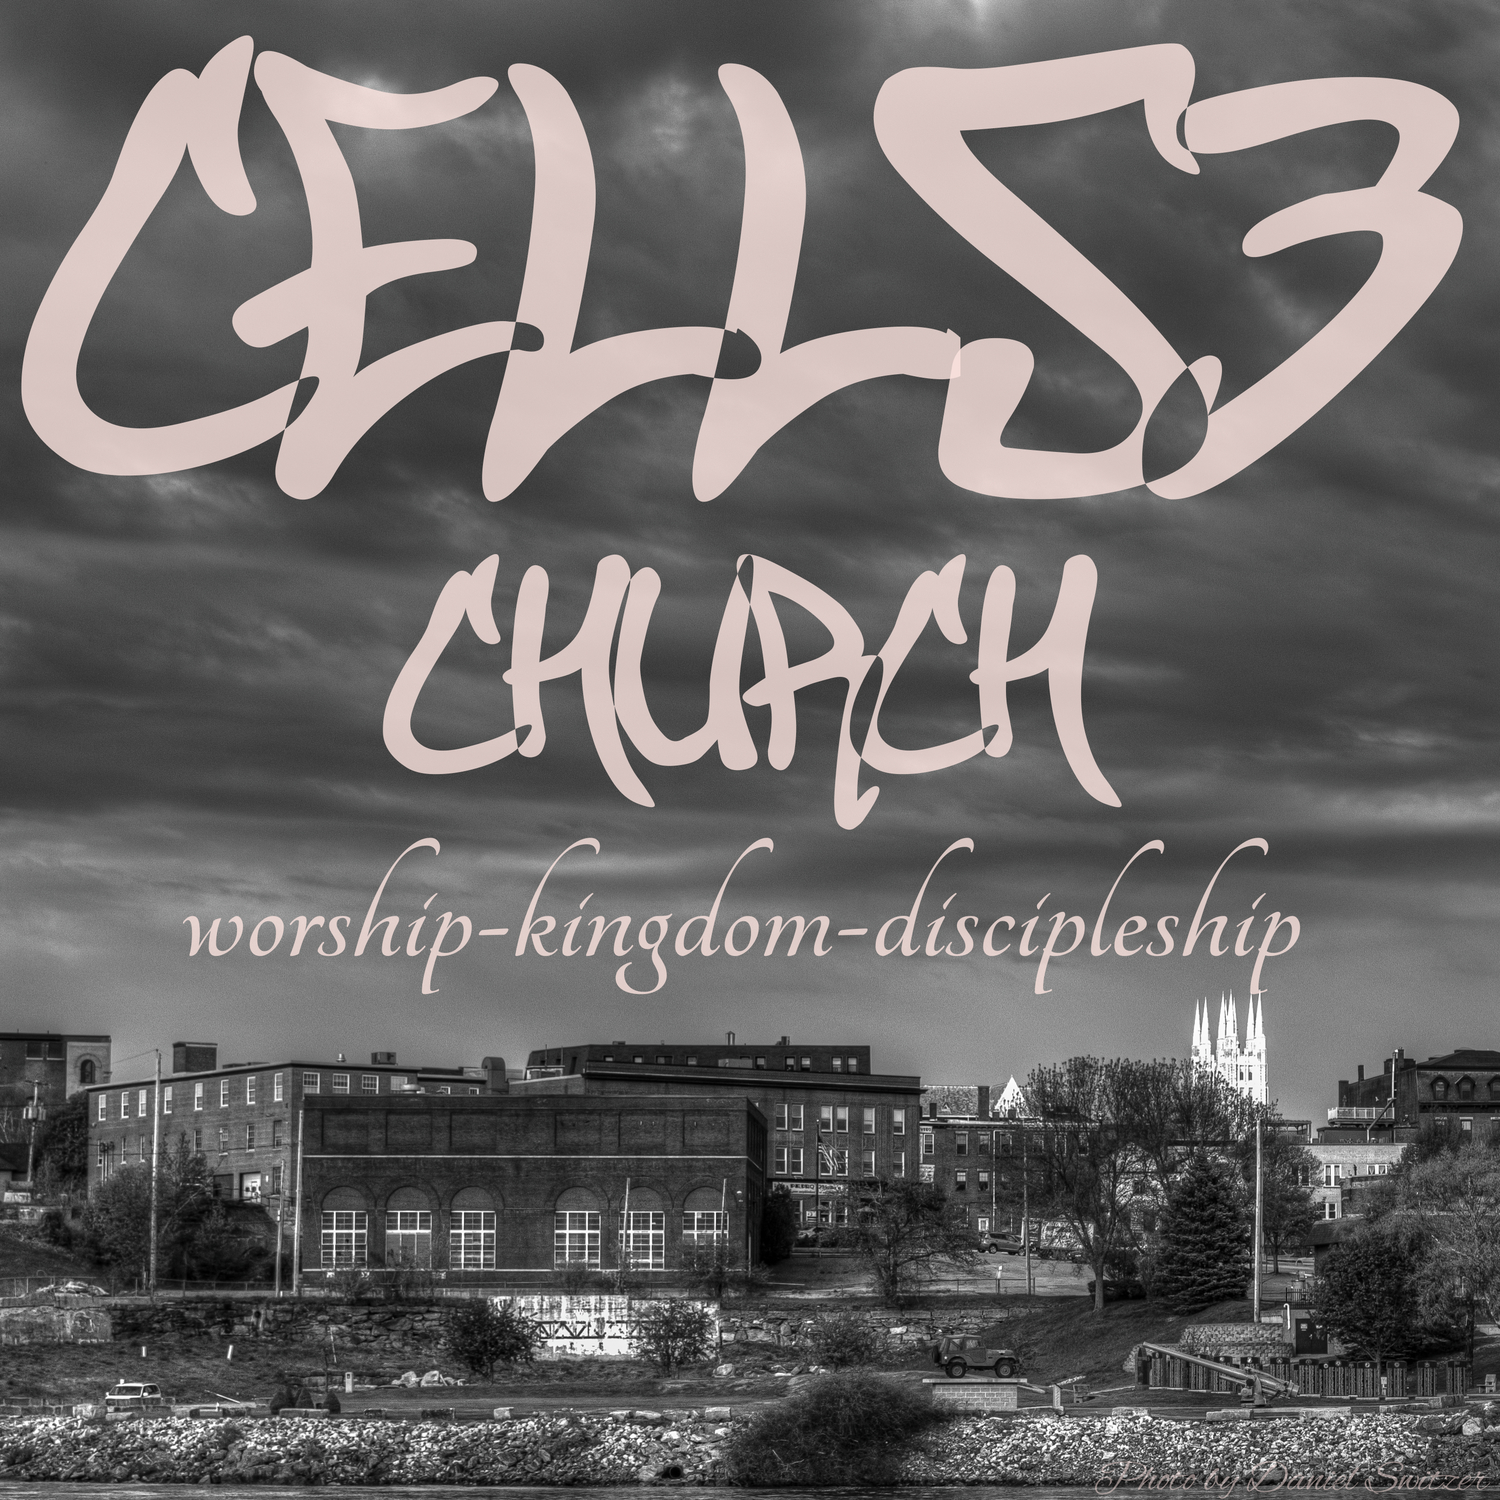 Sermons - Cell53 Church